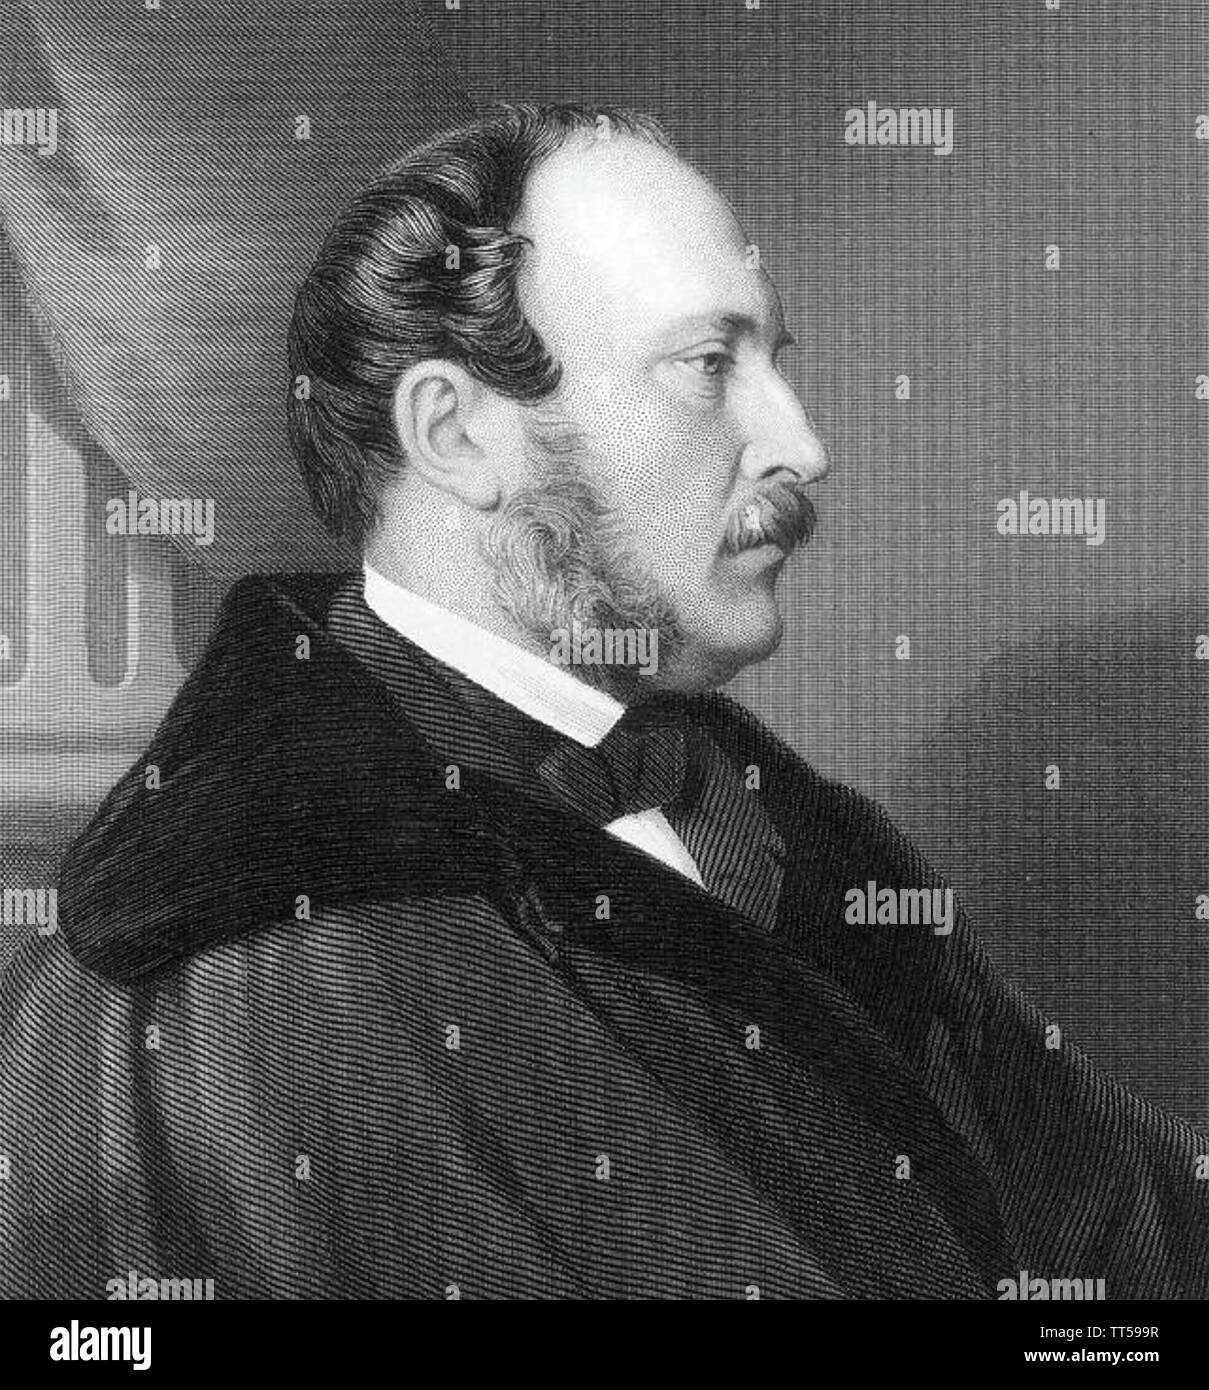 ALBERT,PRINCE CONSORT (1819-1861) husband of Queen Victoria about 1860 - Stock Image